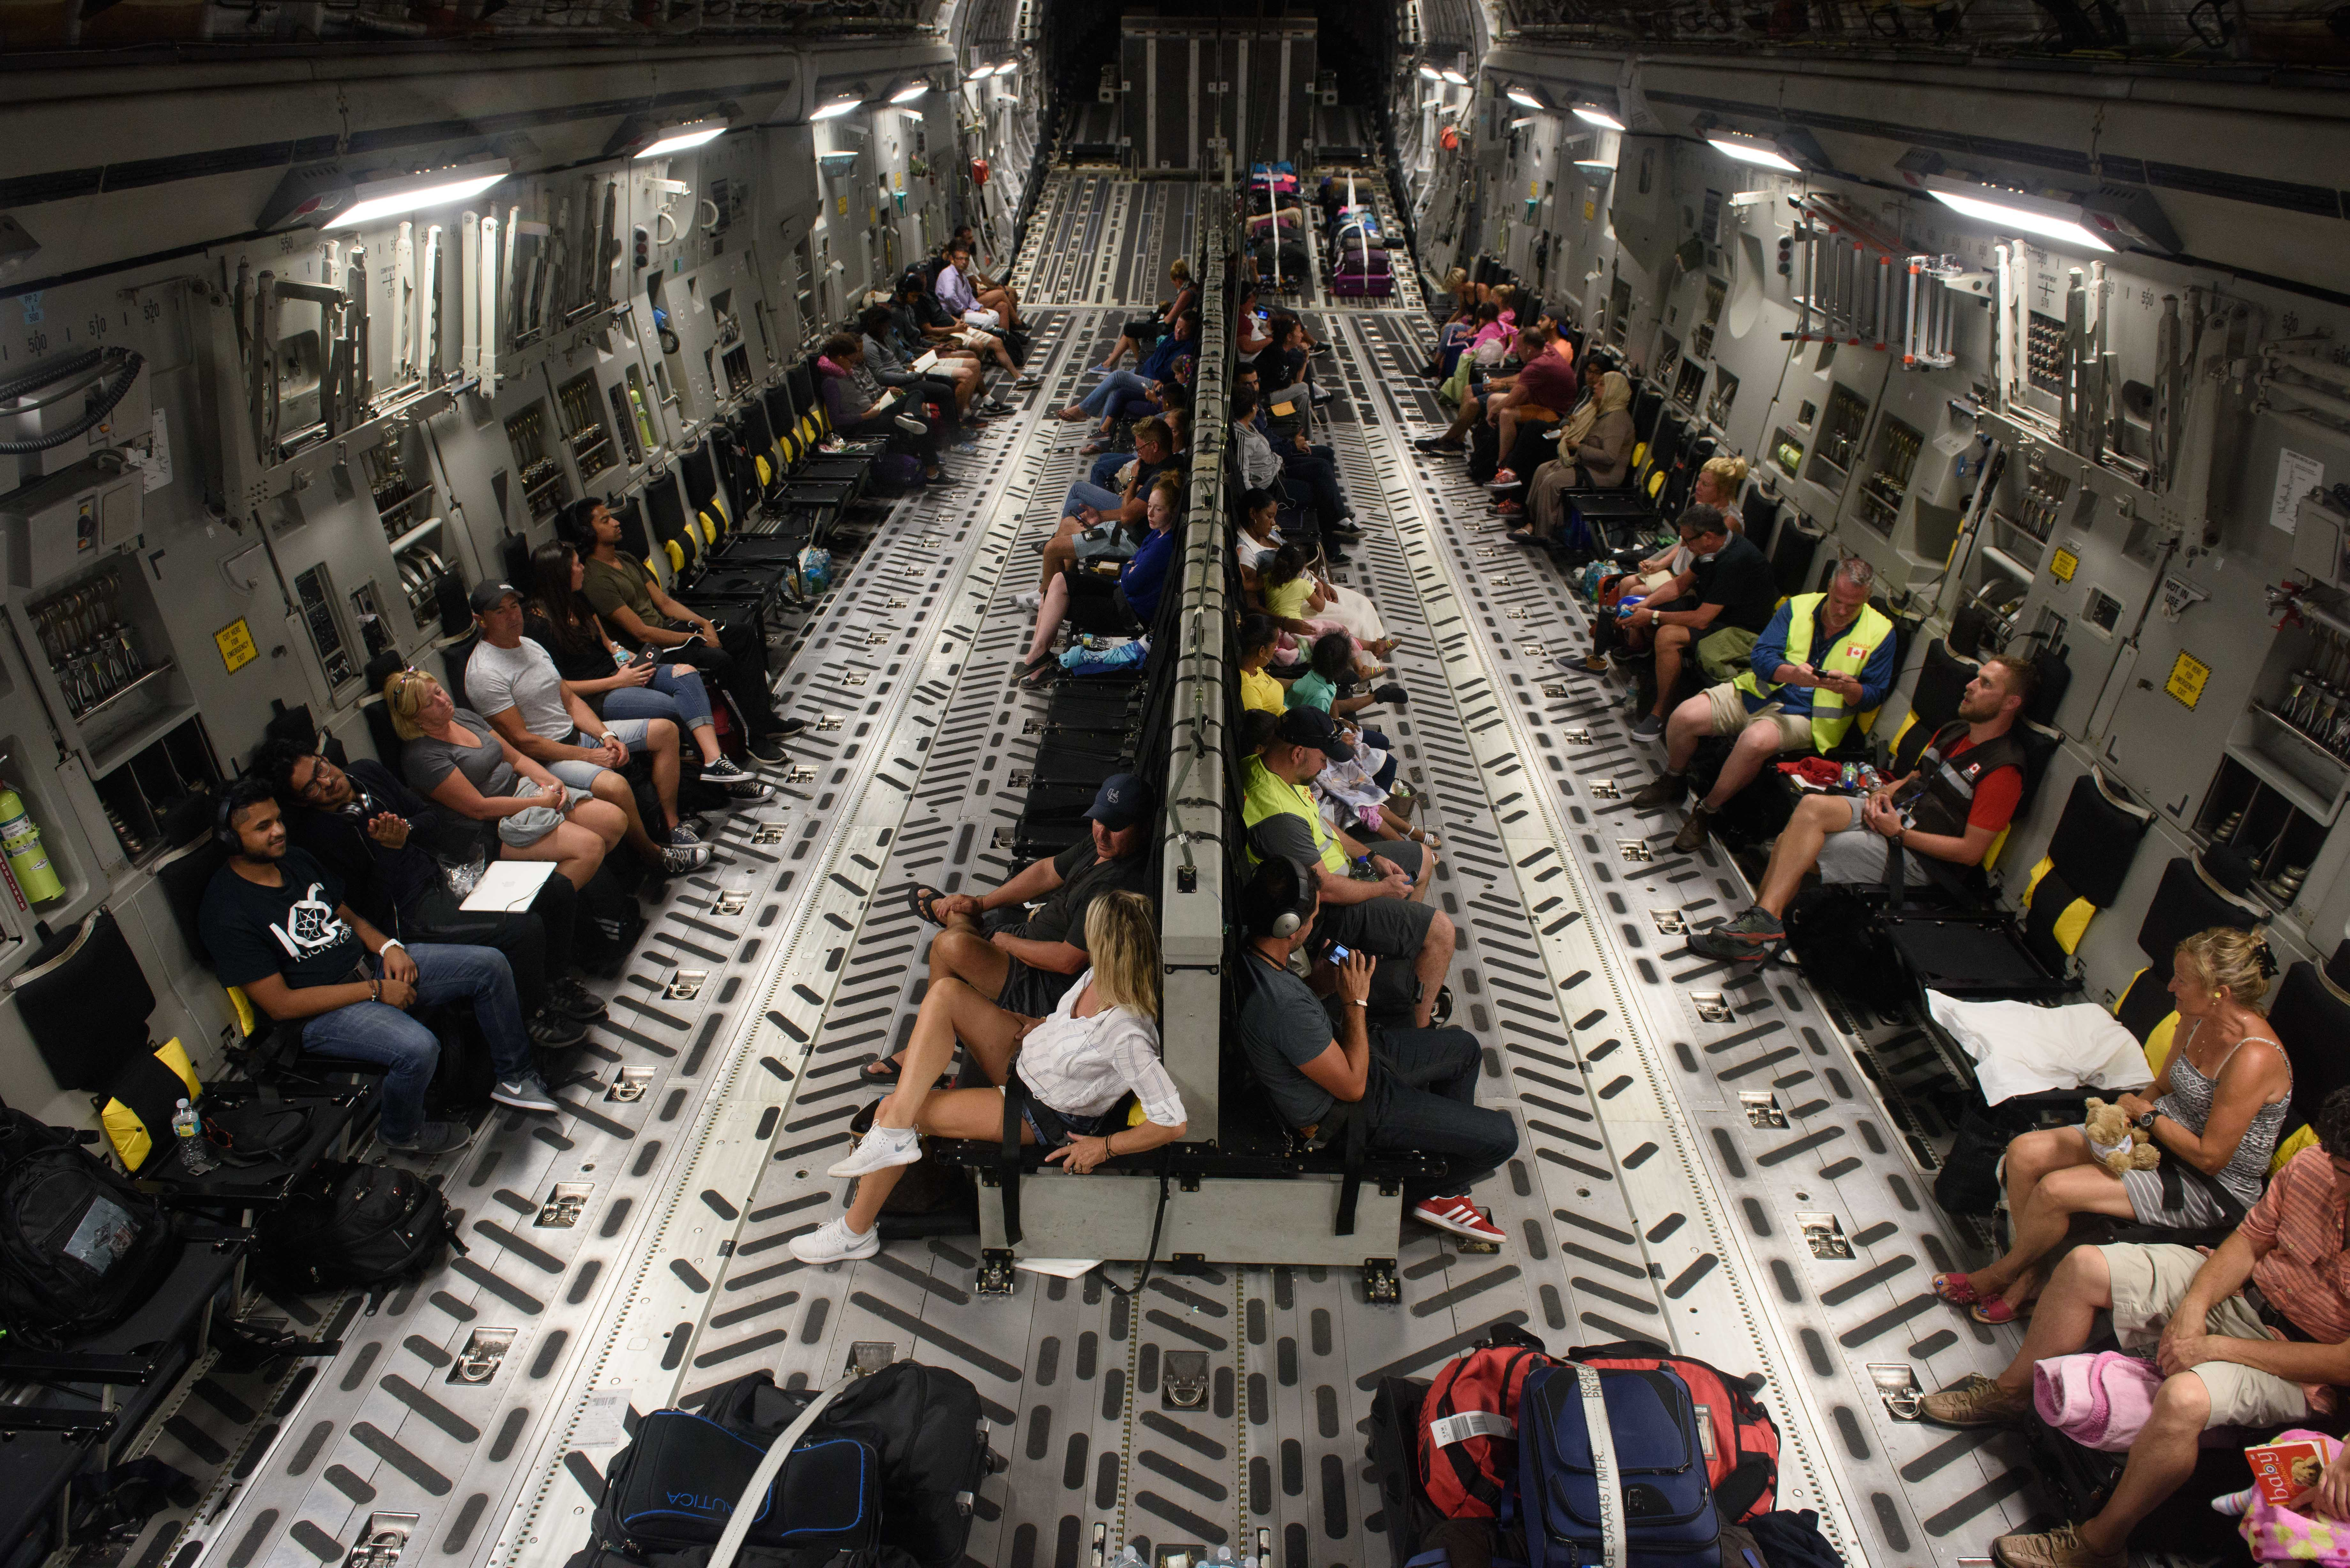 Fifty Canadian citizens stranded in the Caribbean following Hurricane Irma await departure inside a Canadian Air Force CC-177 Globemaster departing from the Provindeciales airport in the Turks and Caicos as part of Operation RENAISSANCE, September 14, 2017. Photo: MCpl Louis Brunet, Canadian Air Force Public Affairs